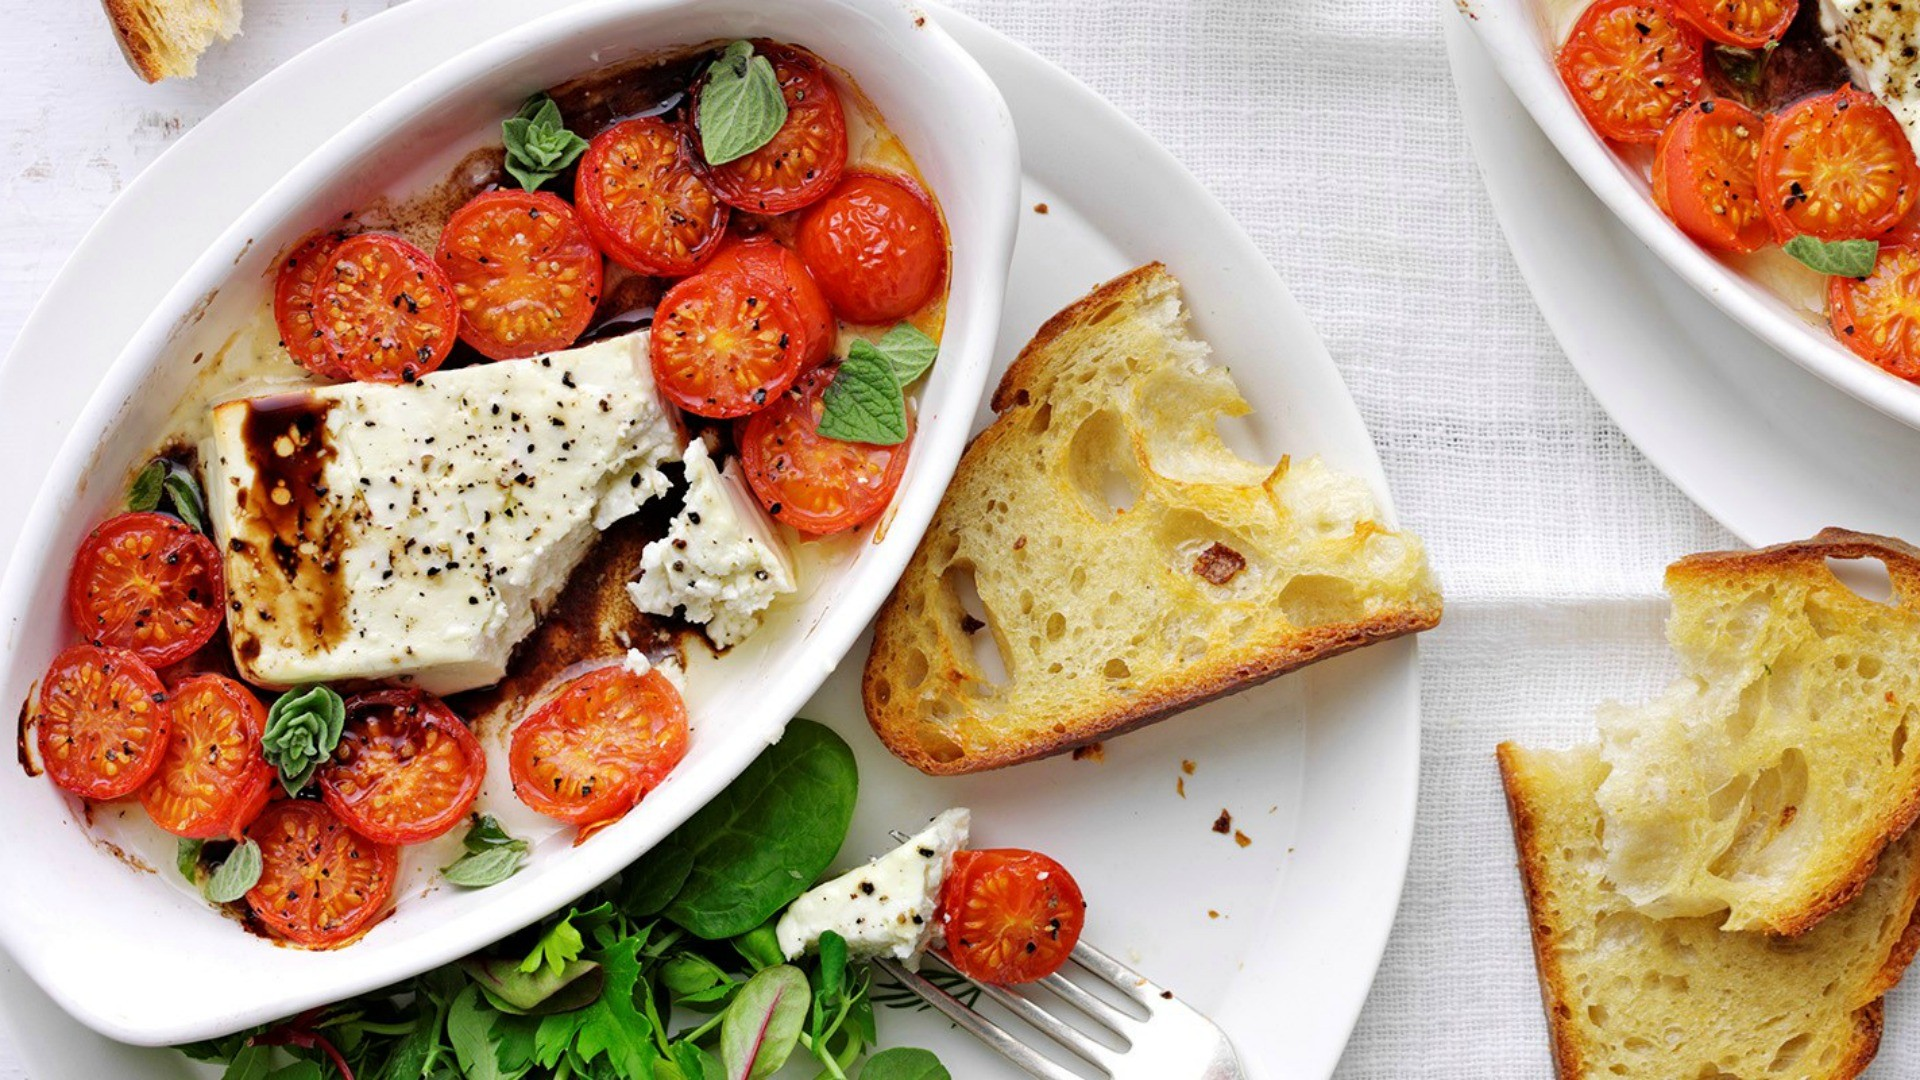 Warm creamy feta compliments the freshness of roasted tomatoes and the crunch of garlic bread